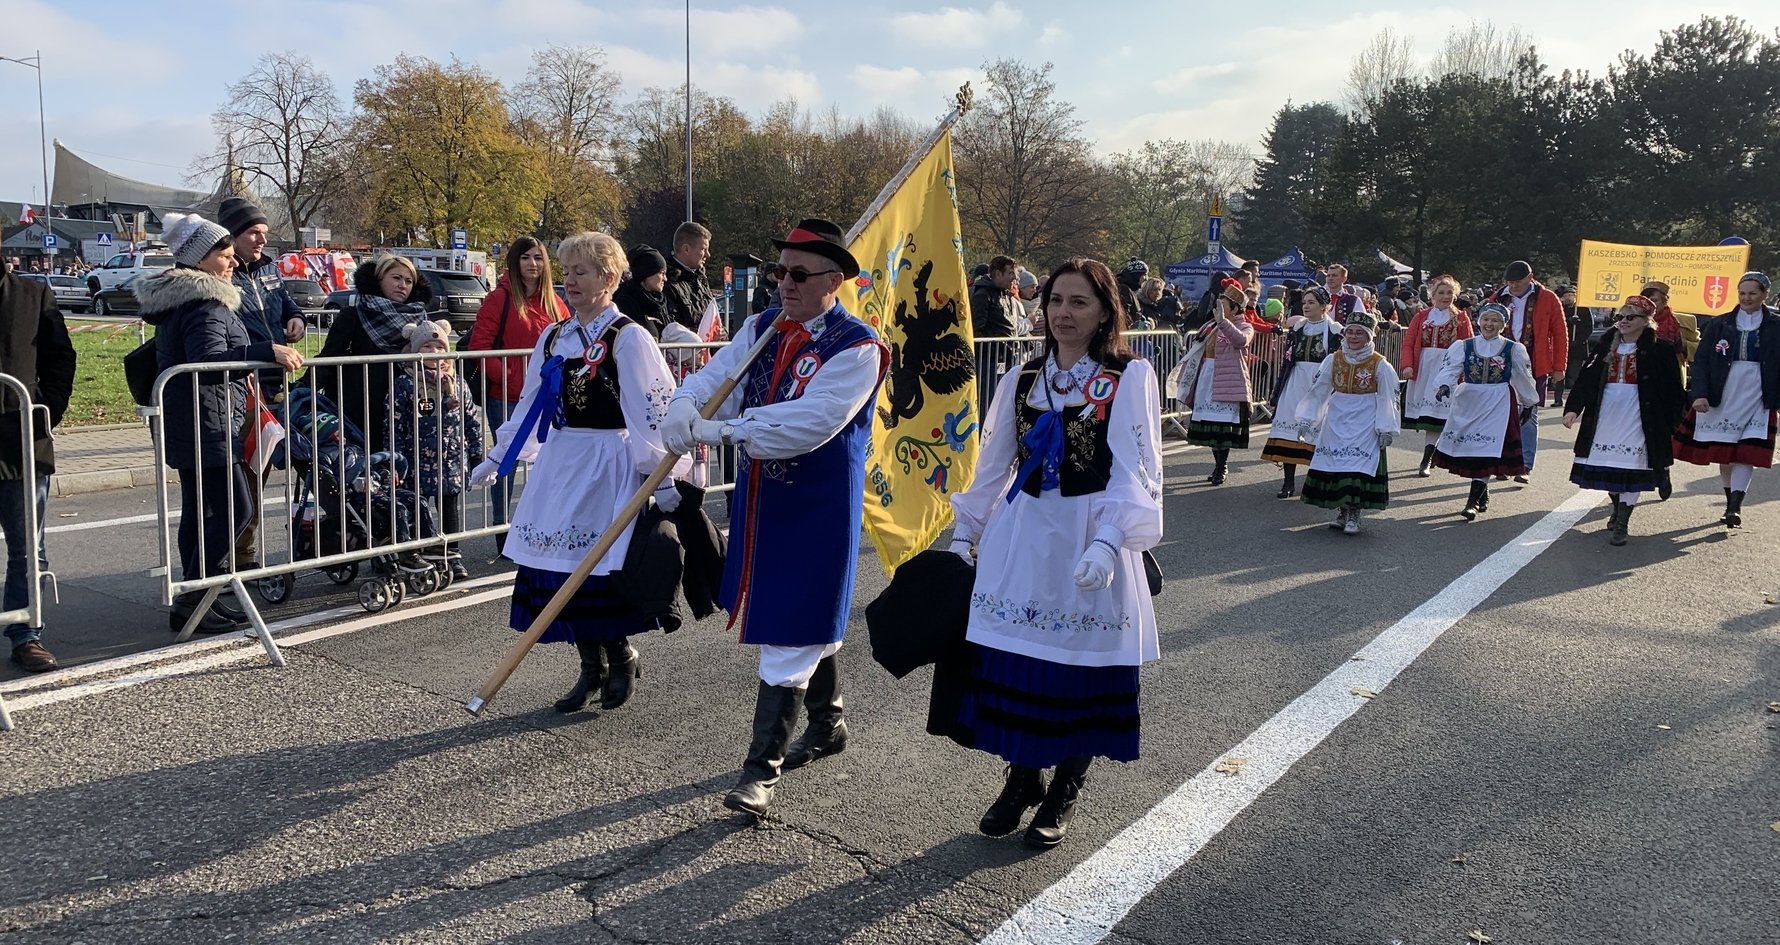 Kashubians in traditional dress at an Independence Day Parade in Gdynia